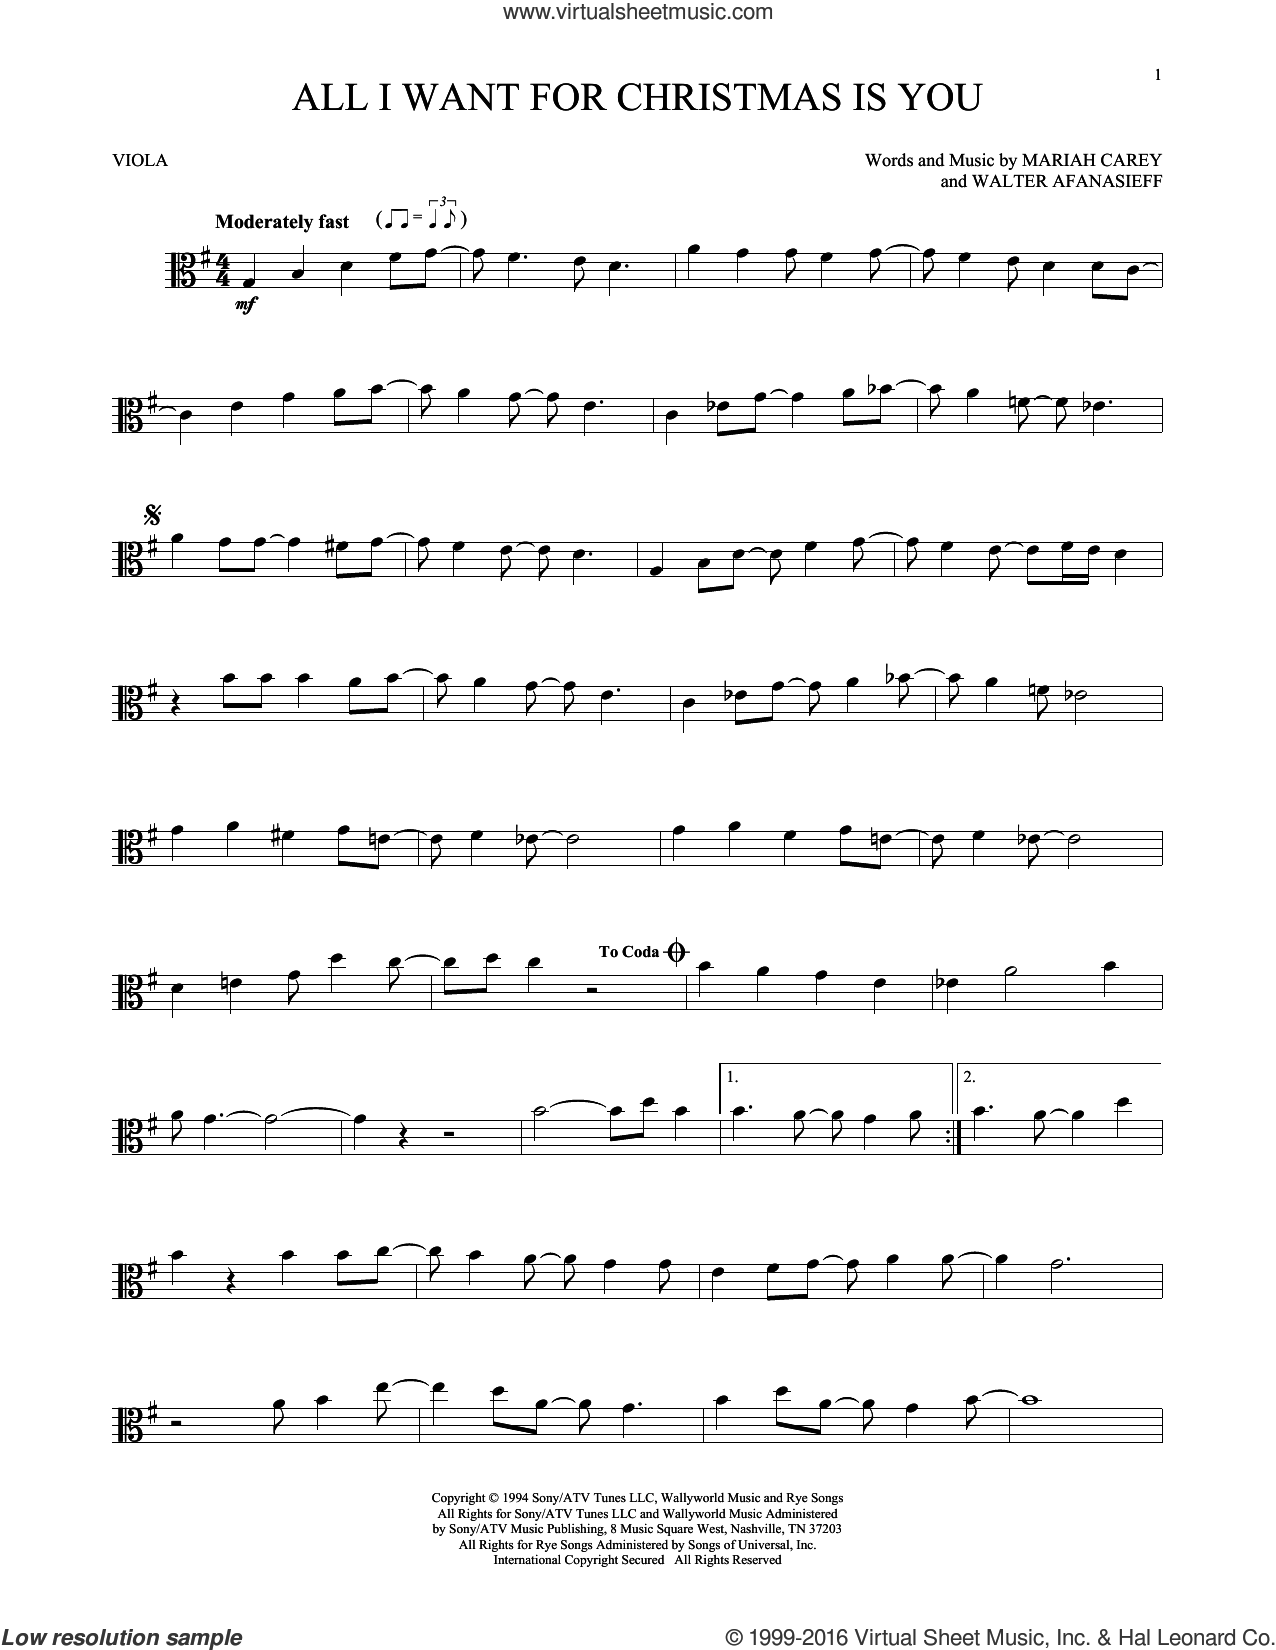 Mariah Carey All I Want For Christmas Is You Sheet Music Notes Chords Score Download Printable Pdf Sheet Music Notes Popular Piano Sheet Music Sheet Music